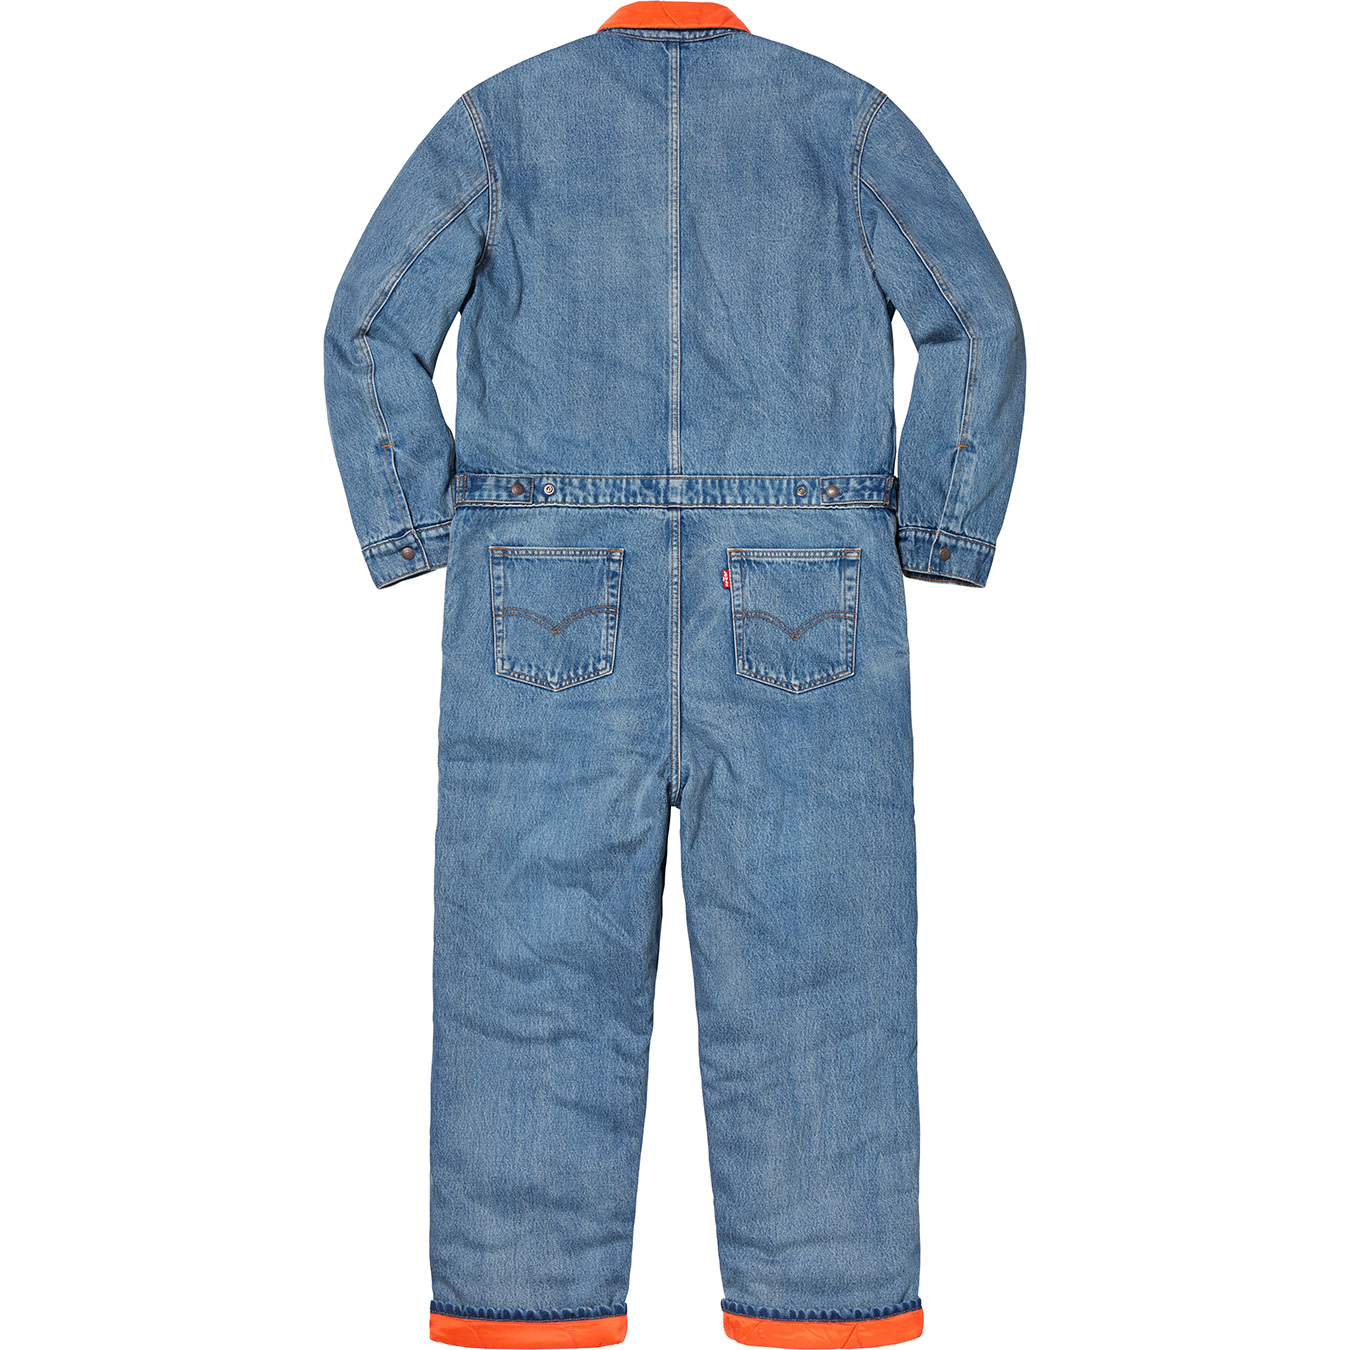 supreme-levis-18aw-denim-coveralls-release-20181103-week11